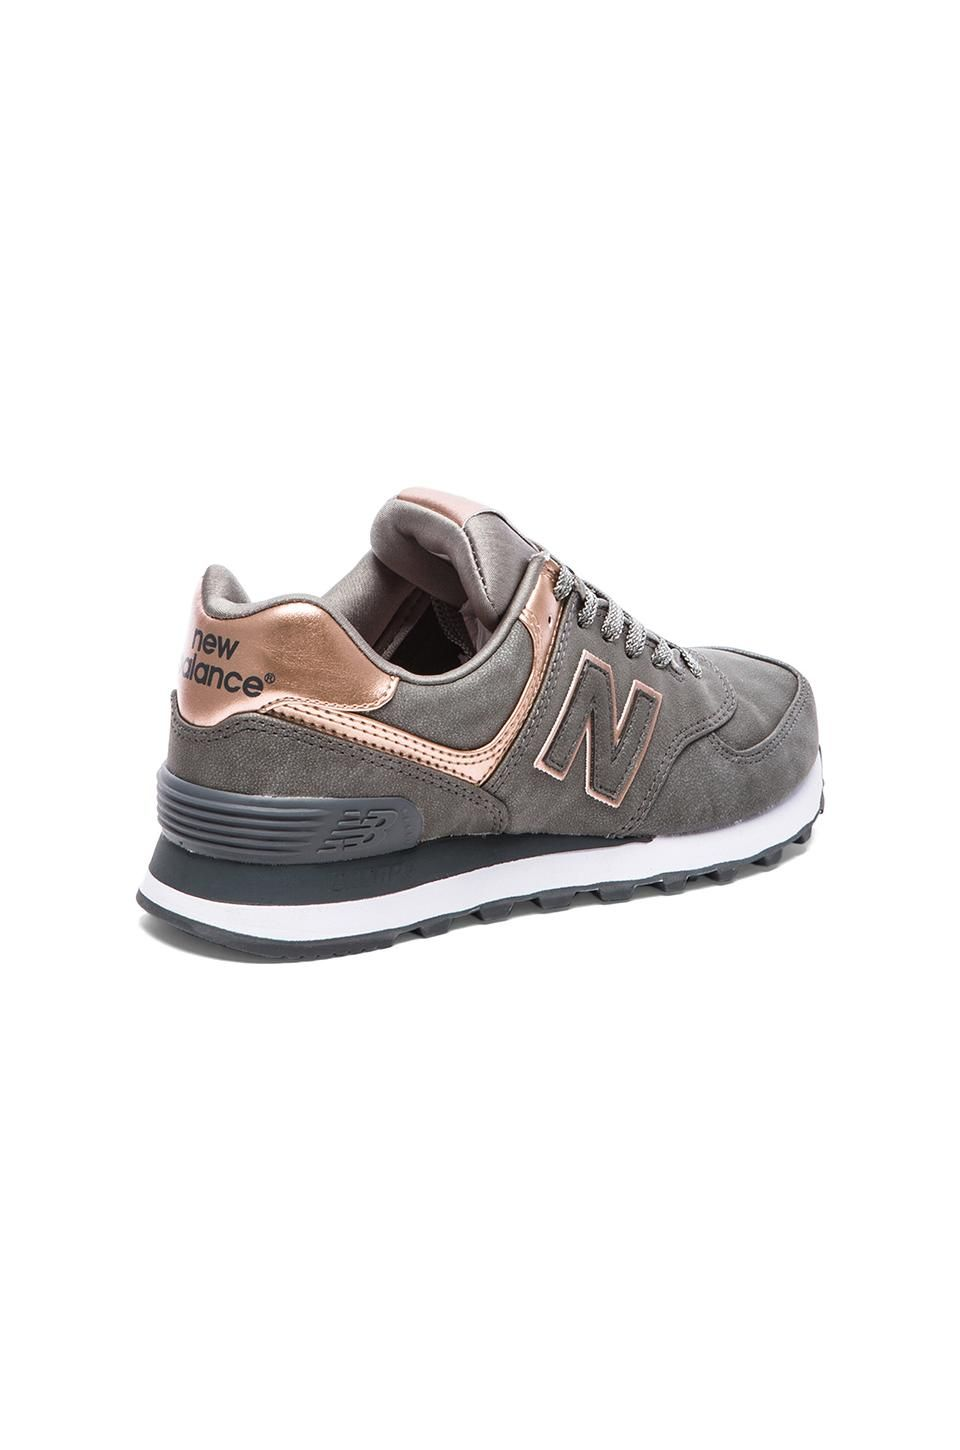 info for 52530 a1690 New Balance 574 Precious Metals Collection Sneaker in Silver ...